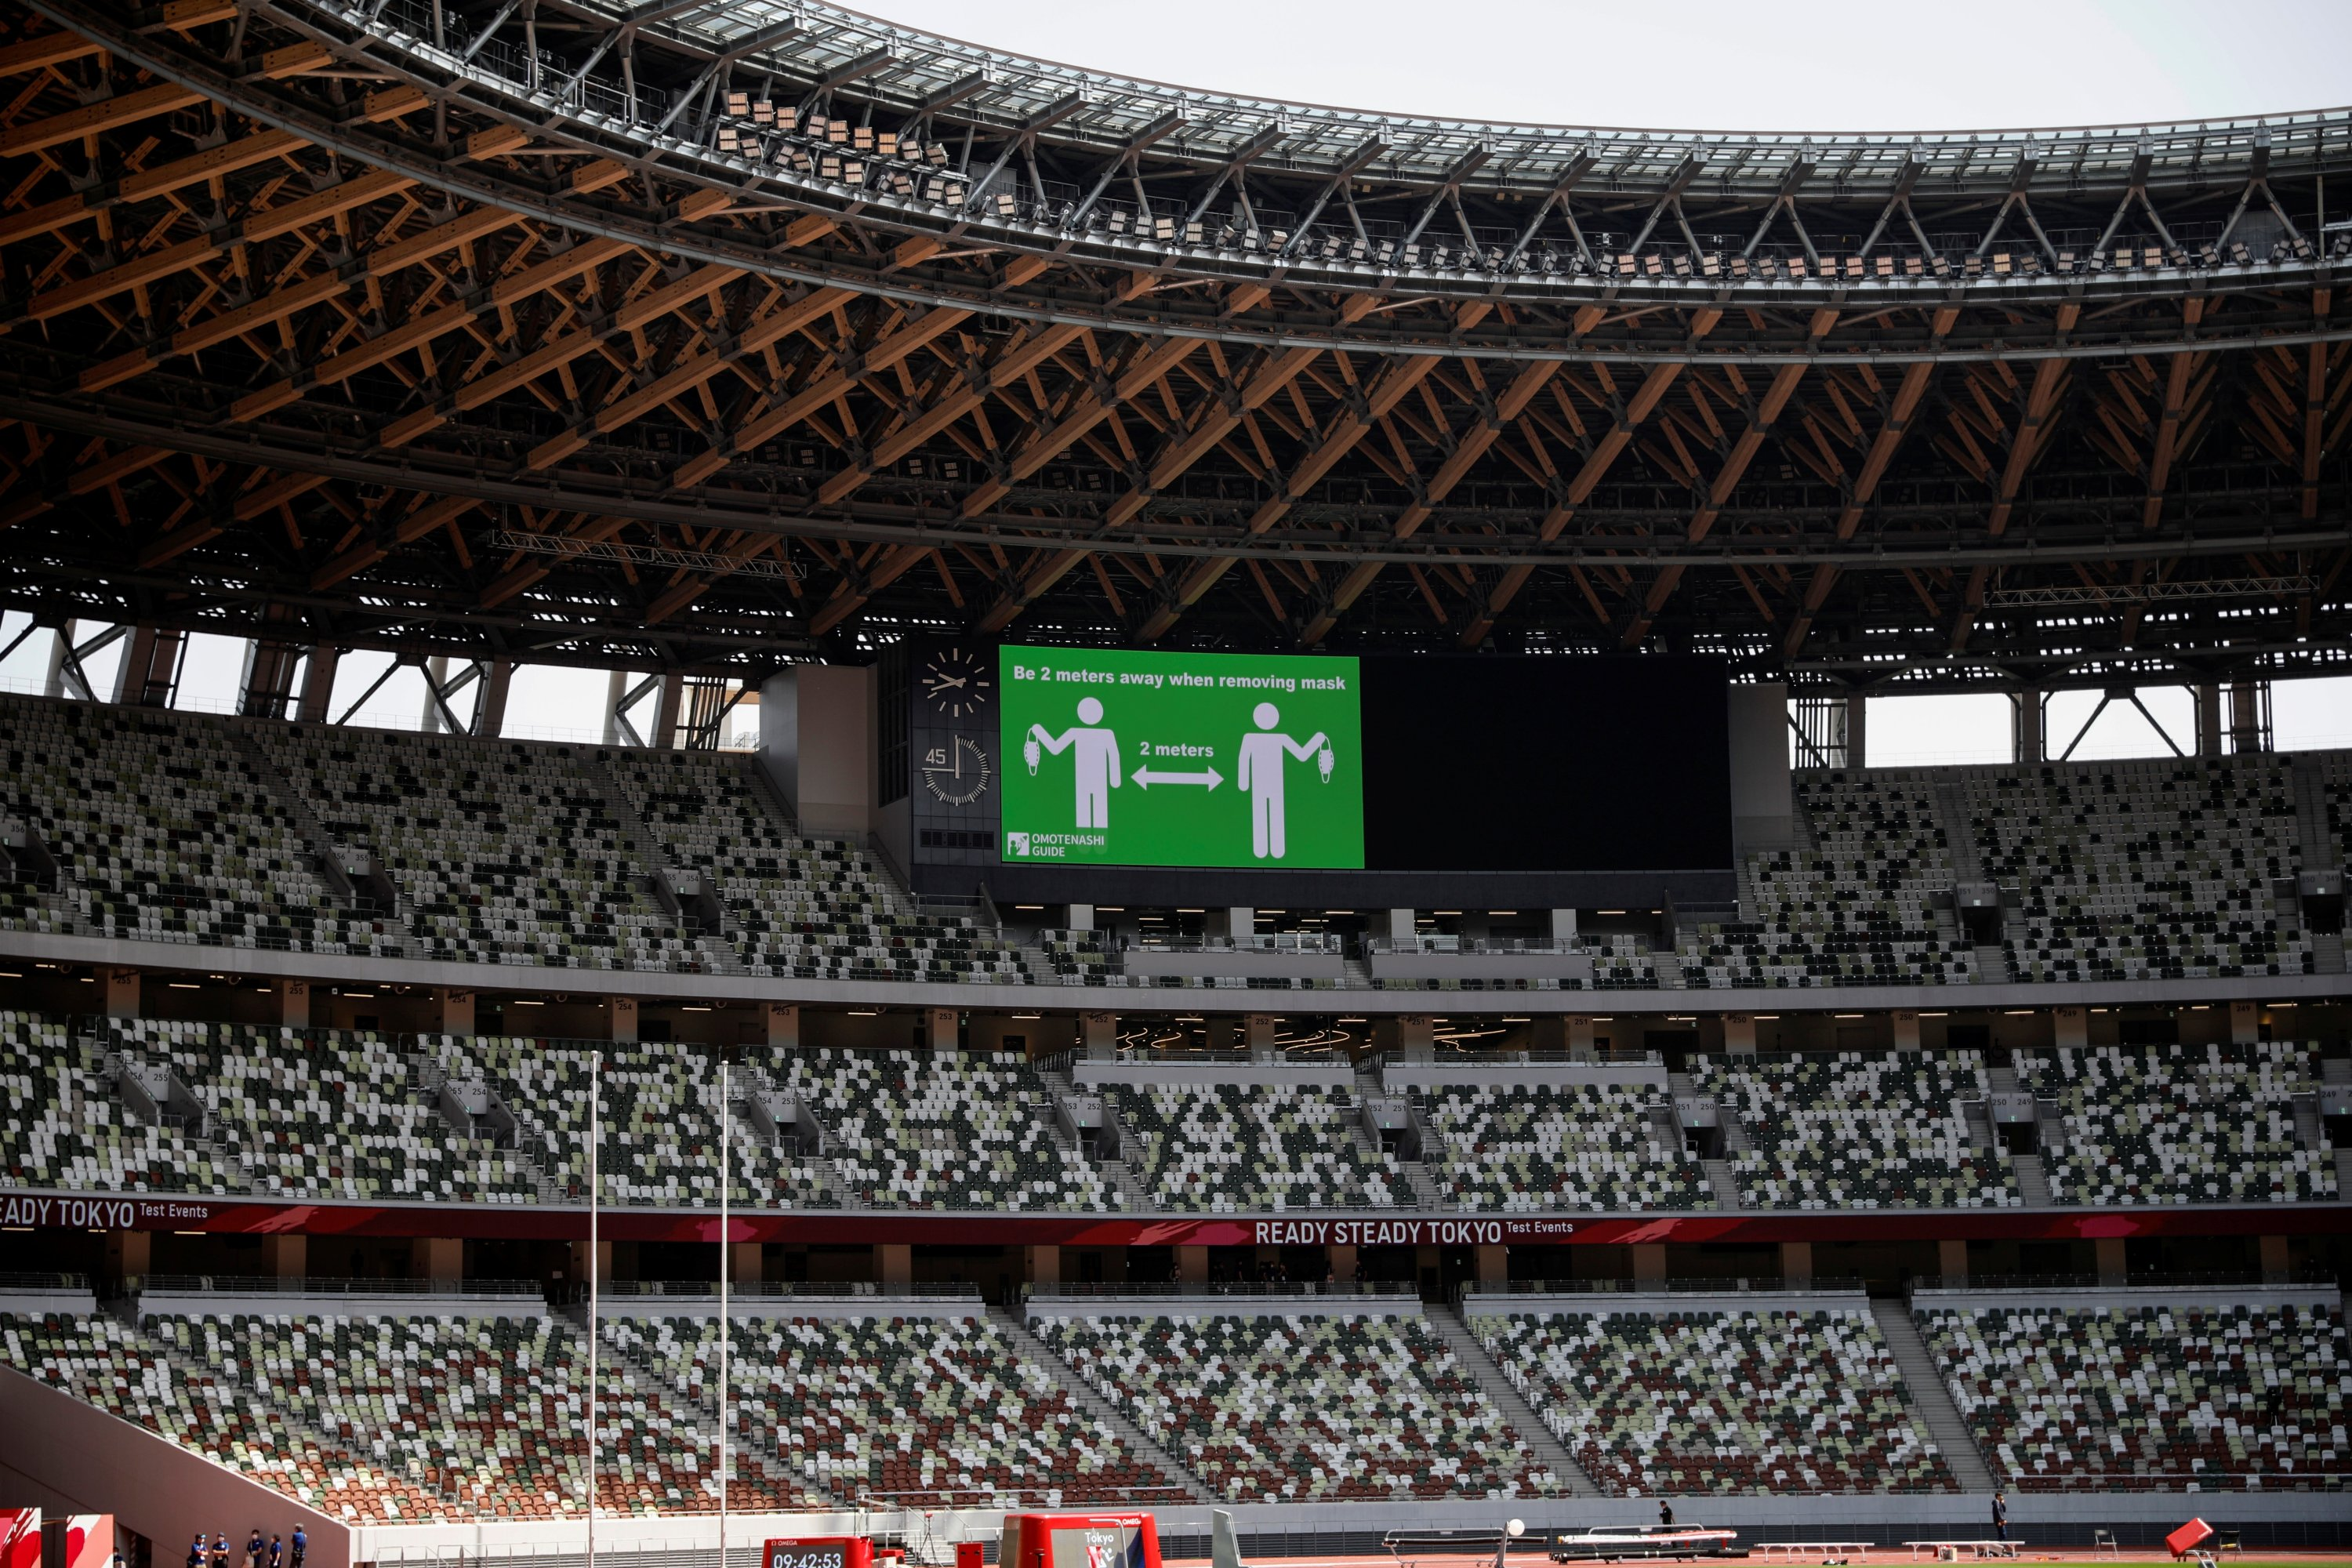 A message regarding safe distancing measures amid the COVID-19 pandemic is shown on a screen at the Olympic Stadium before the start of the morning session of the athletics test event, Tokyo, Japan, May 9, 2021. (Reuters Photo)